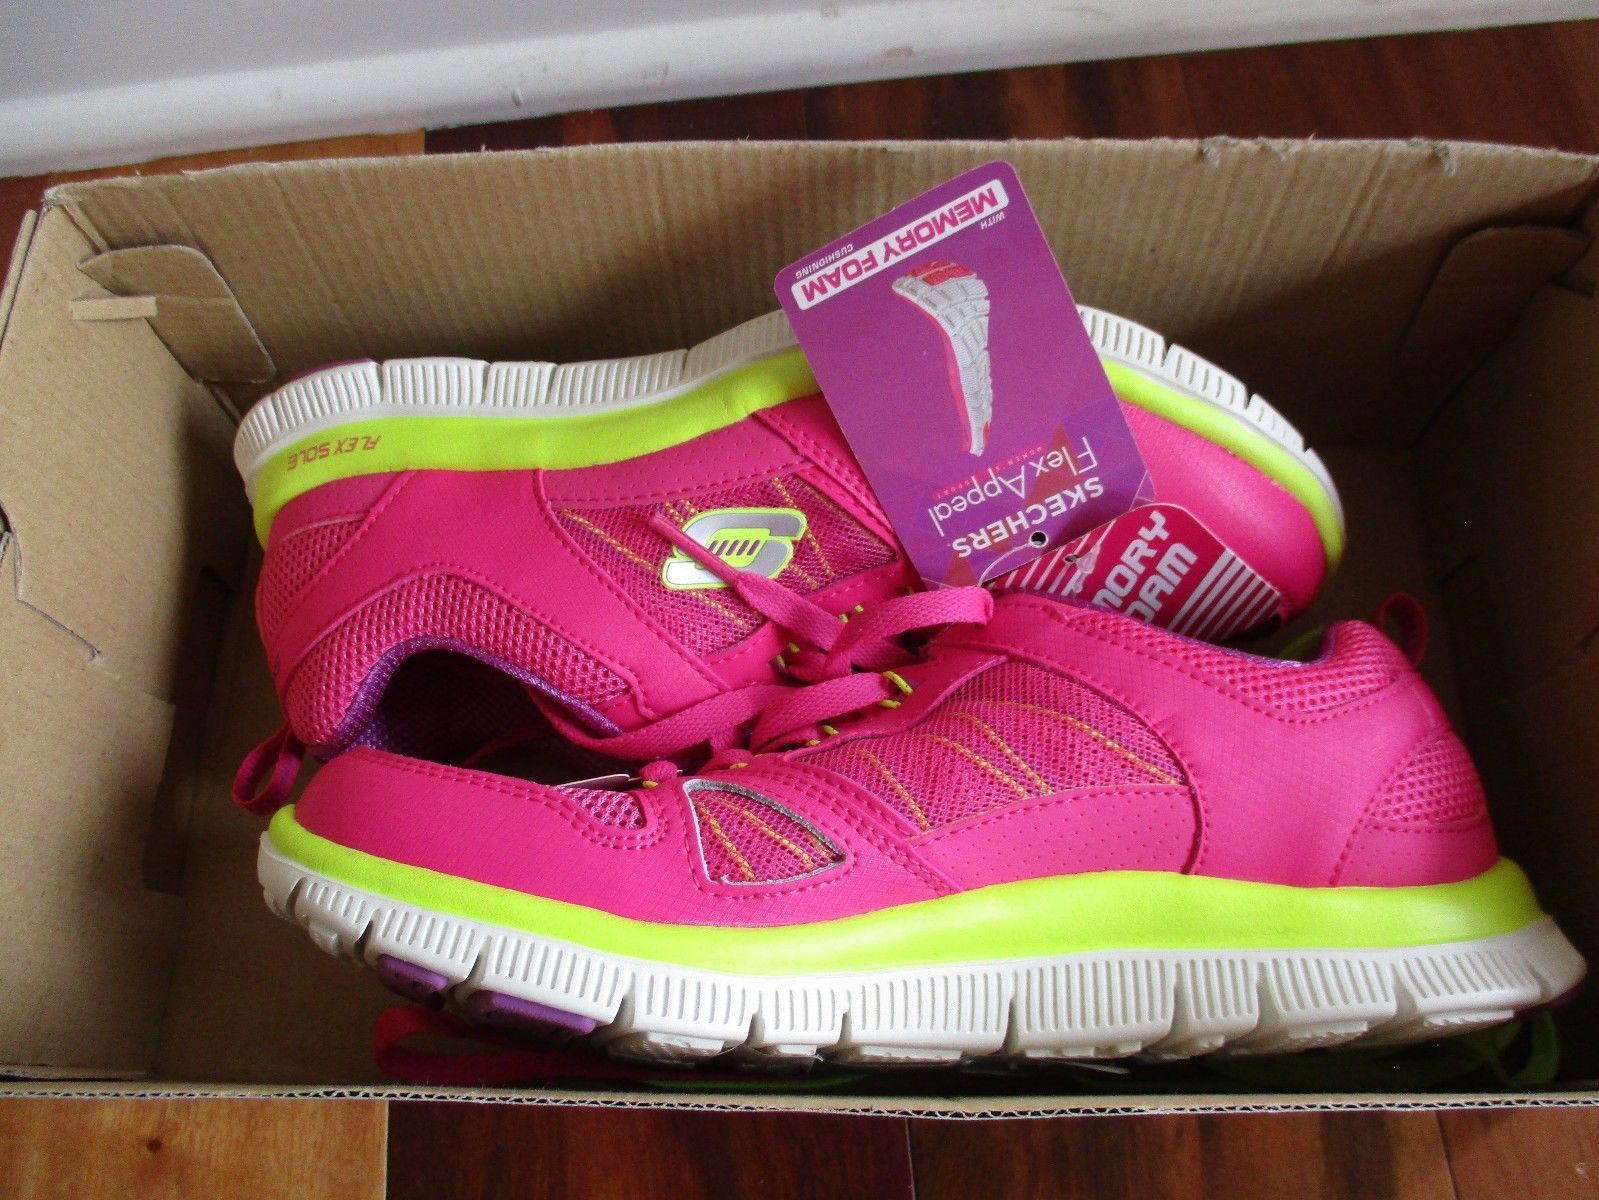 BNIB Skechers Flex Appeal - Spring Fever Womens' Athletic Shoes, ships w/o box image 10